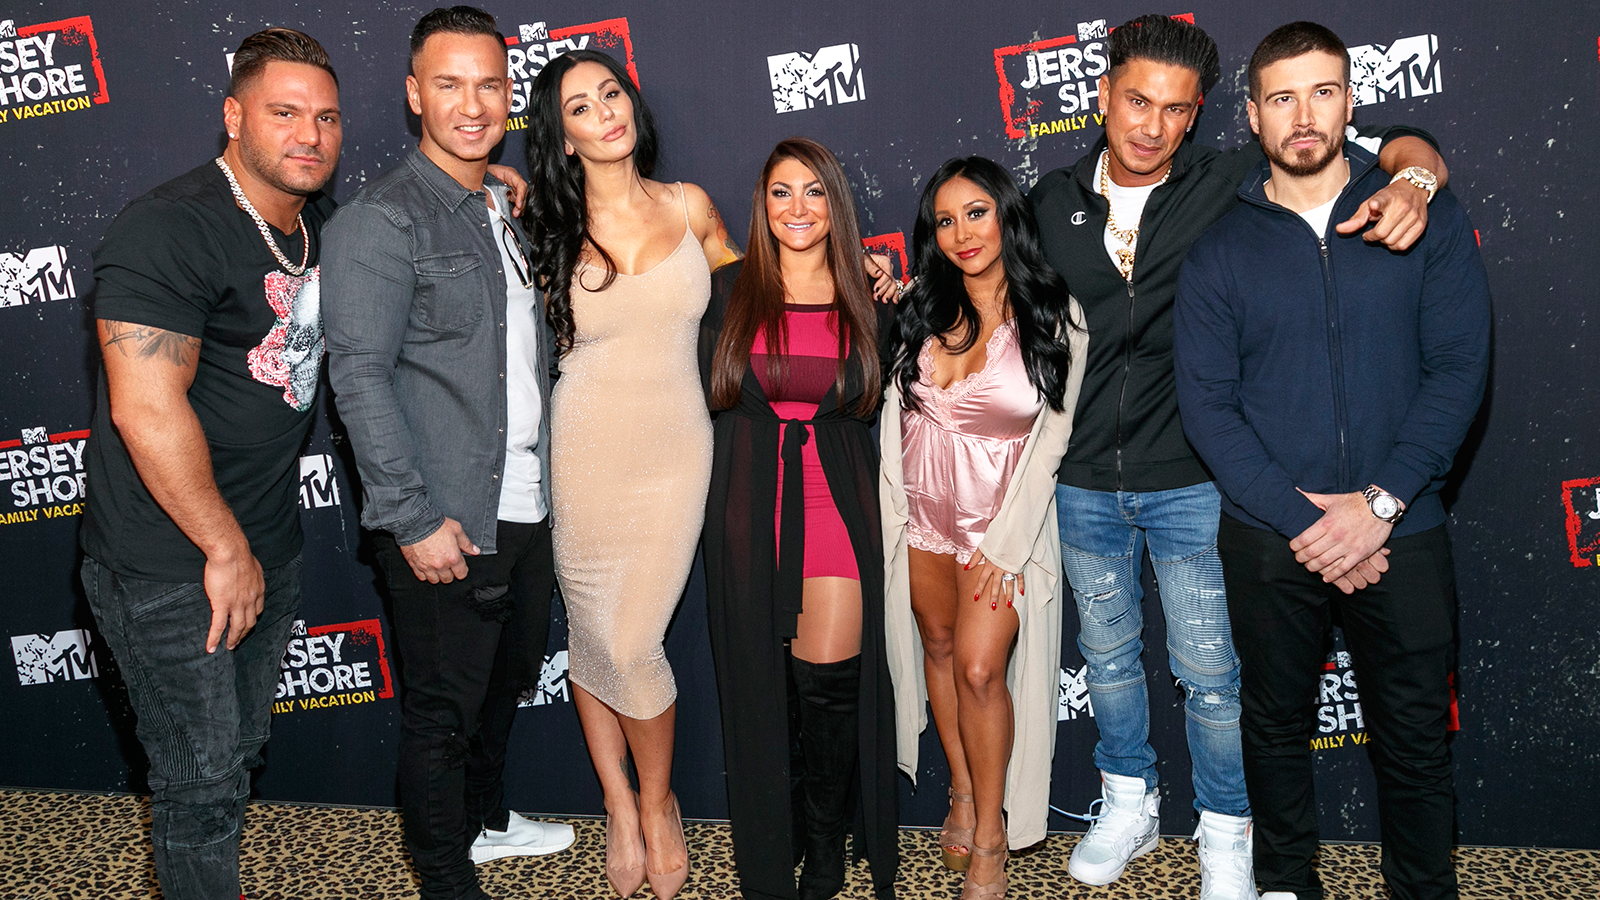 Jersey Shore' Drama: Couple Feuds, Prison Time and More